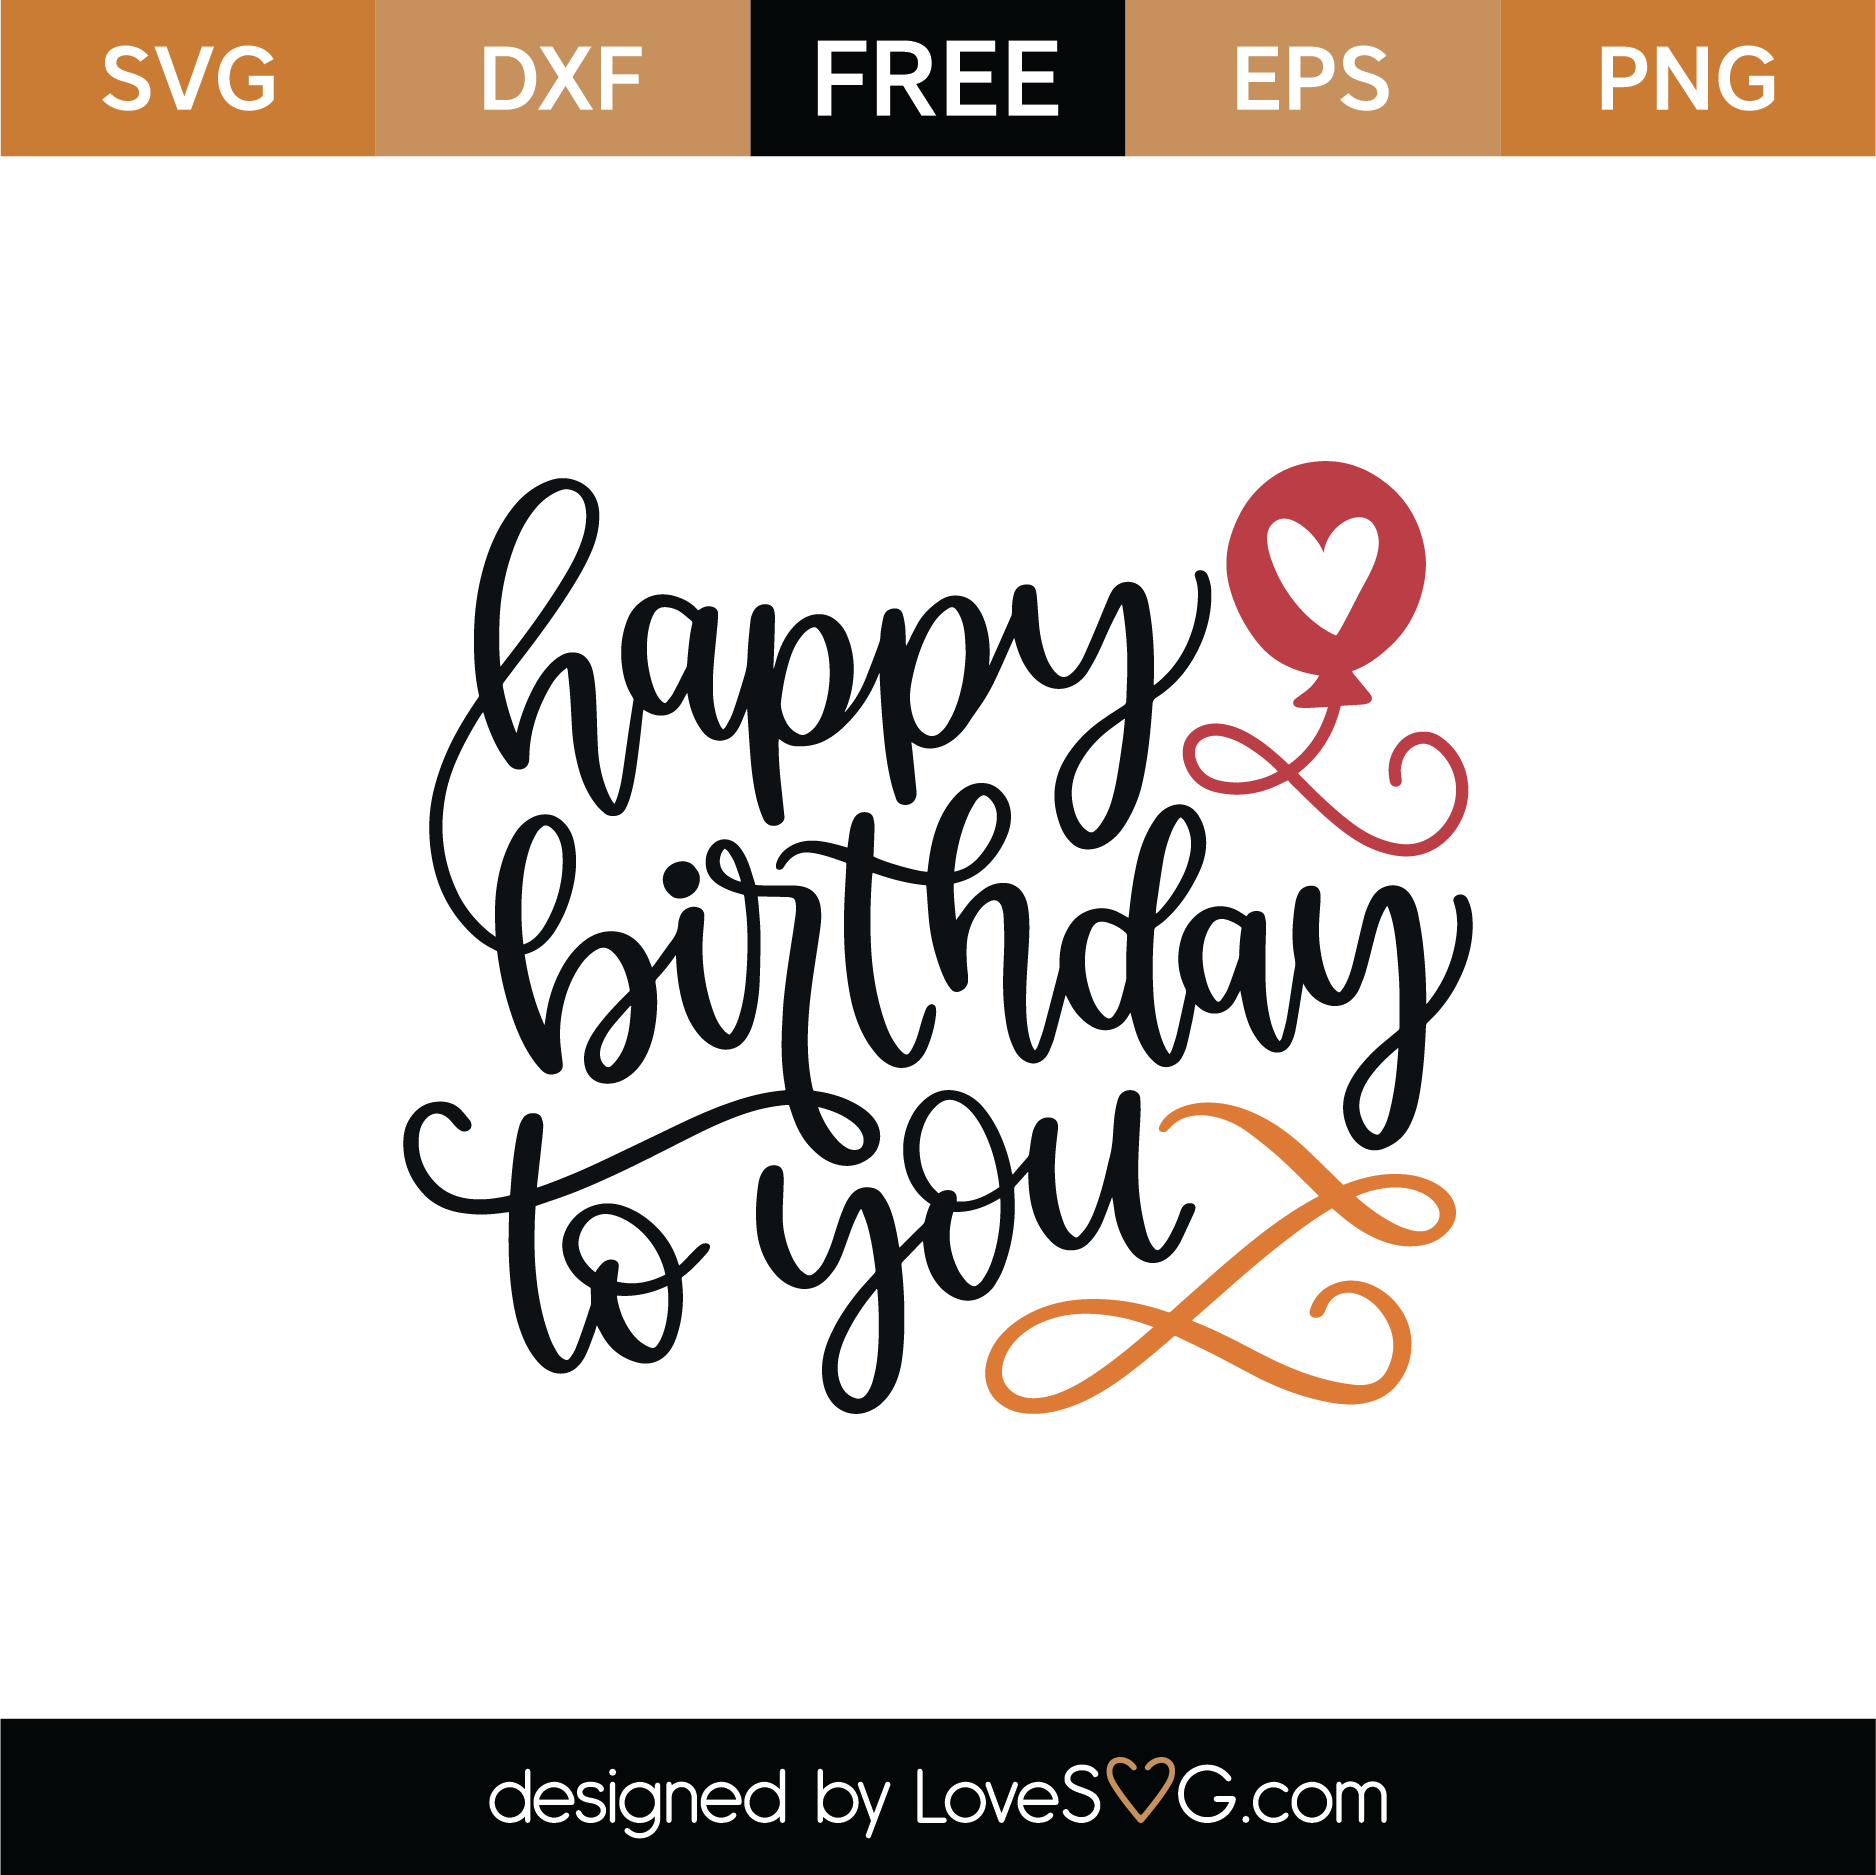 Download Free Happy Birthday To You SVG Cut File | Lovesvg.com